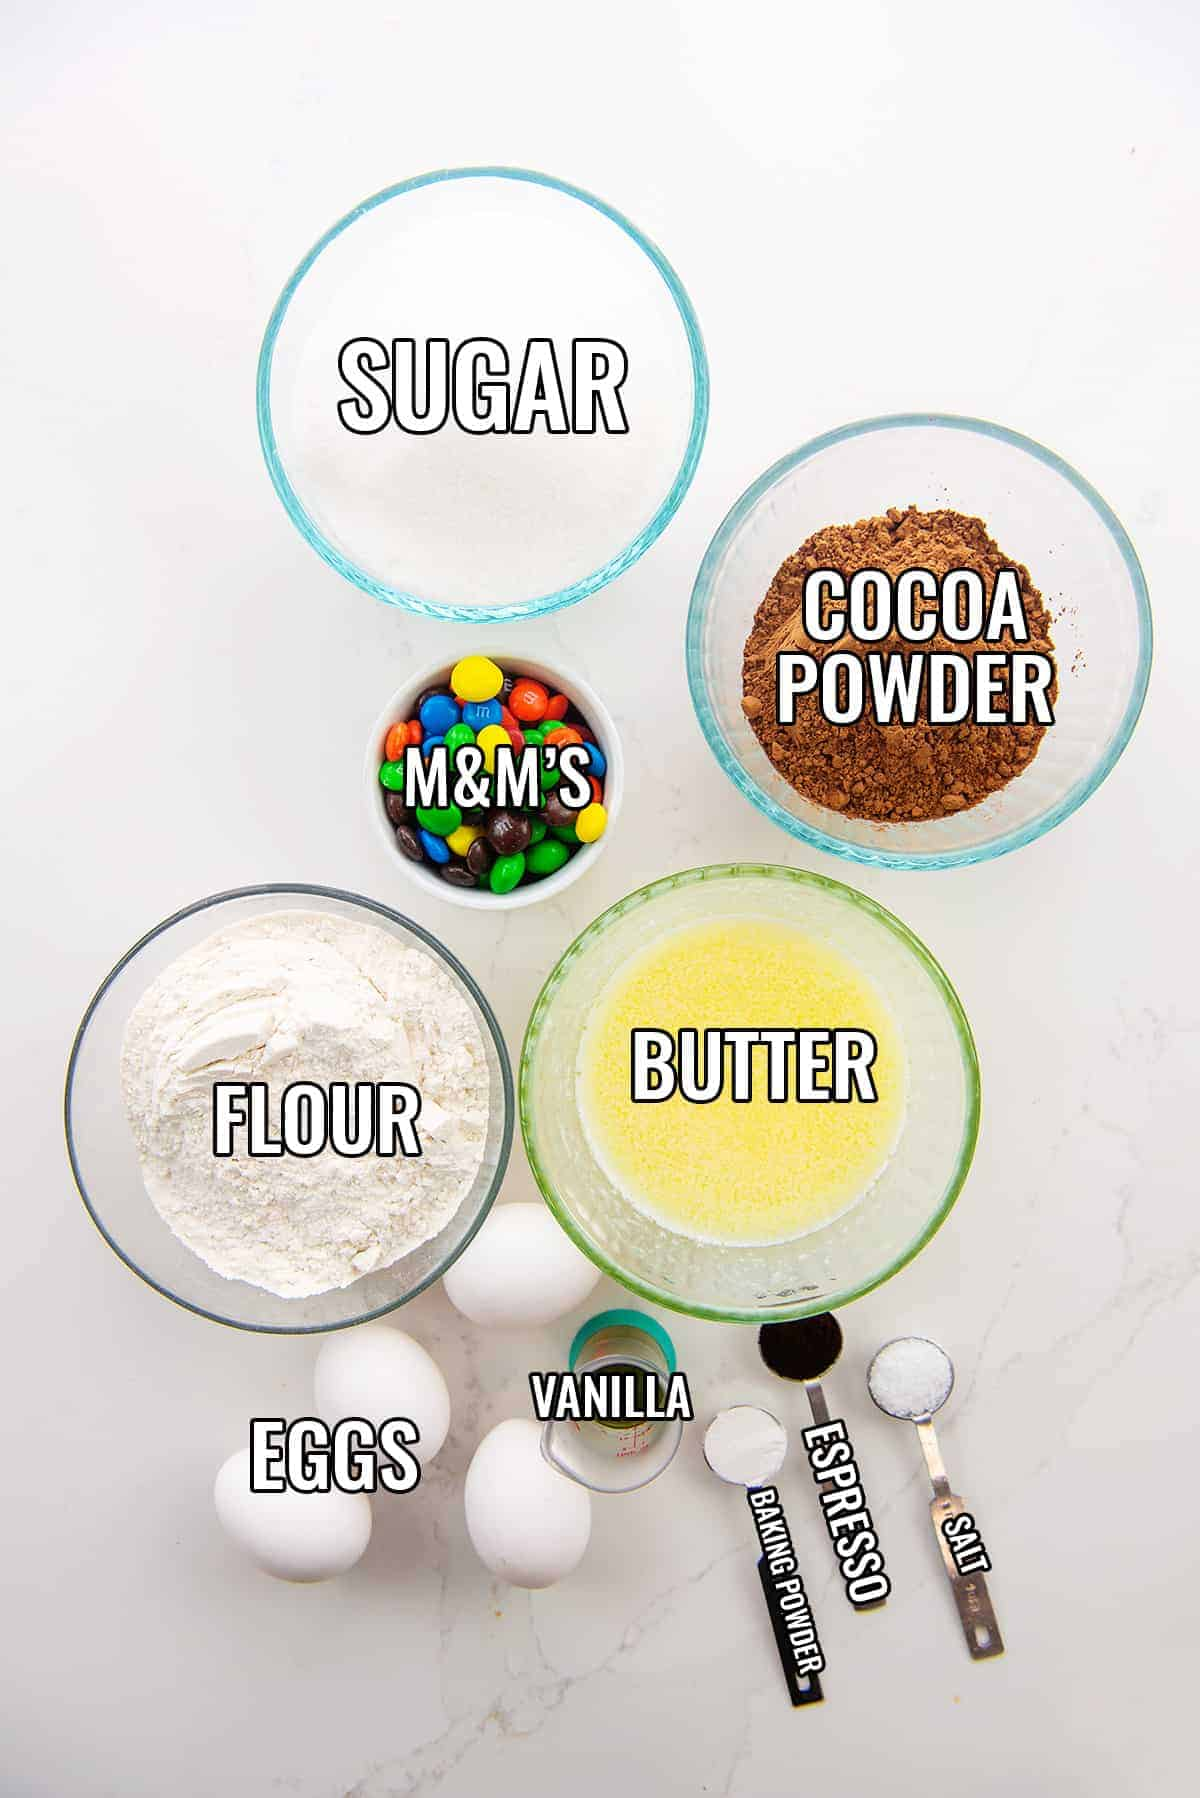 ingredients for brownies with labels.